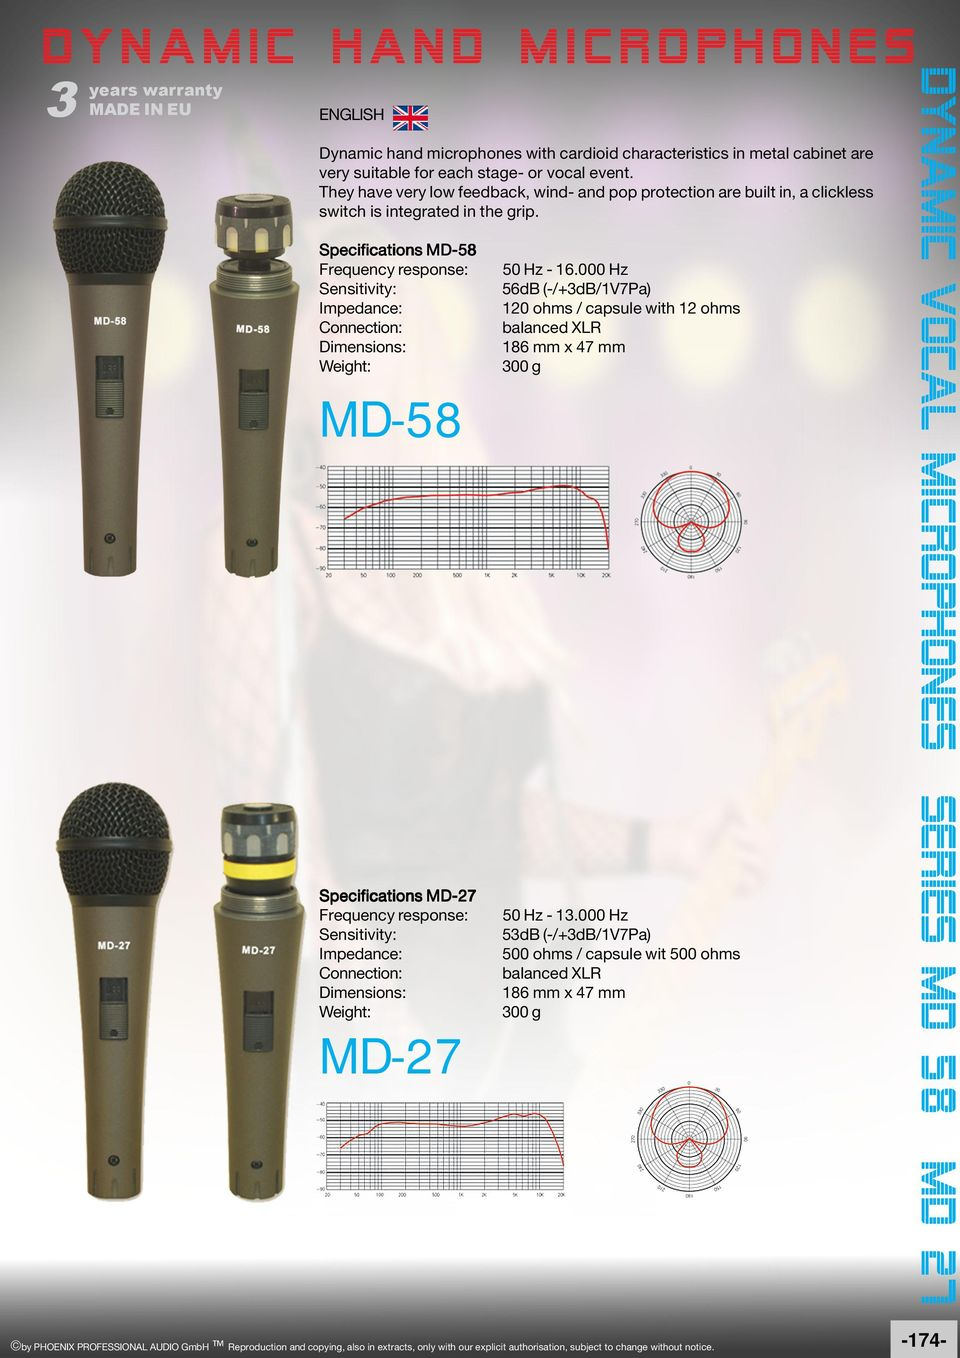 Specifications MD-58 Sensitivity: Impedance: Connection: Dimensions: Weight: MD-58 50 Hz - 16.